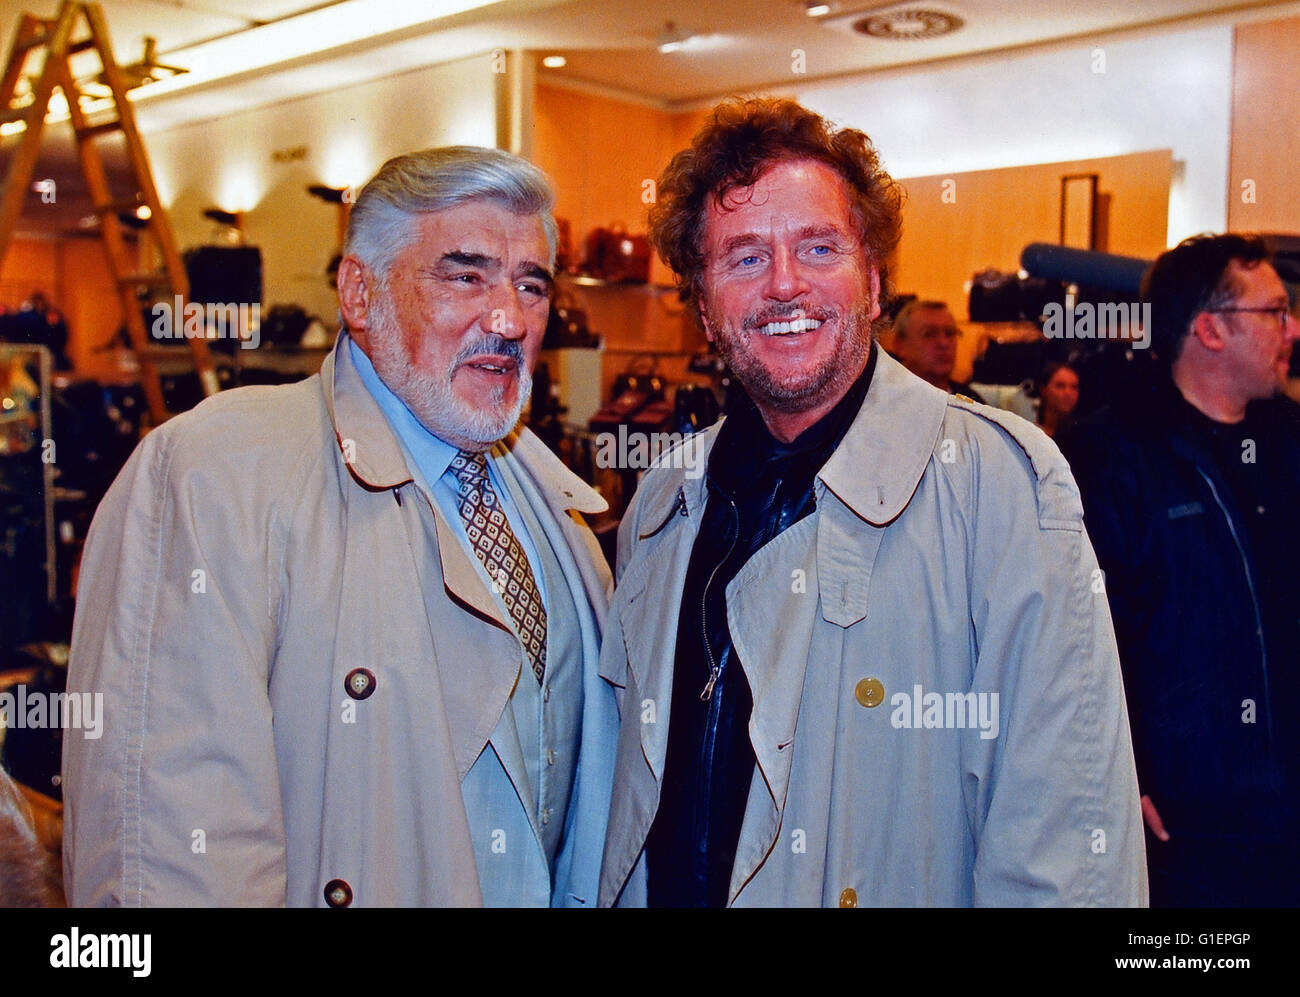 Dieter Wedel Schauspieler High Resolution Stock Photography And Images Alamy